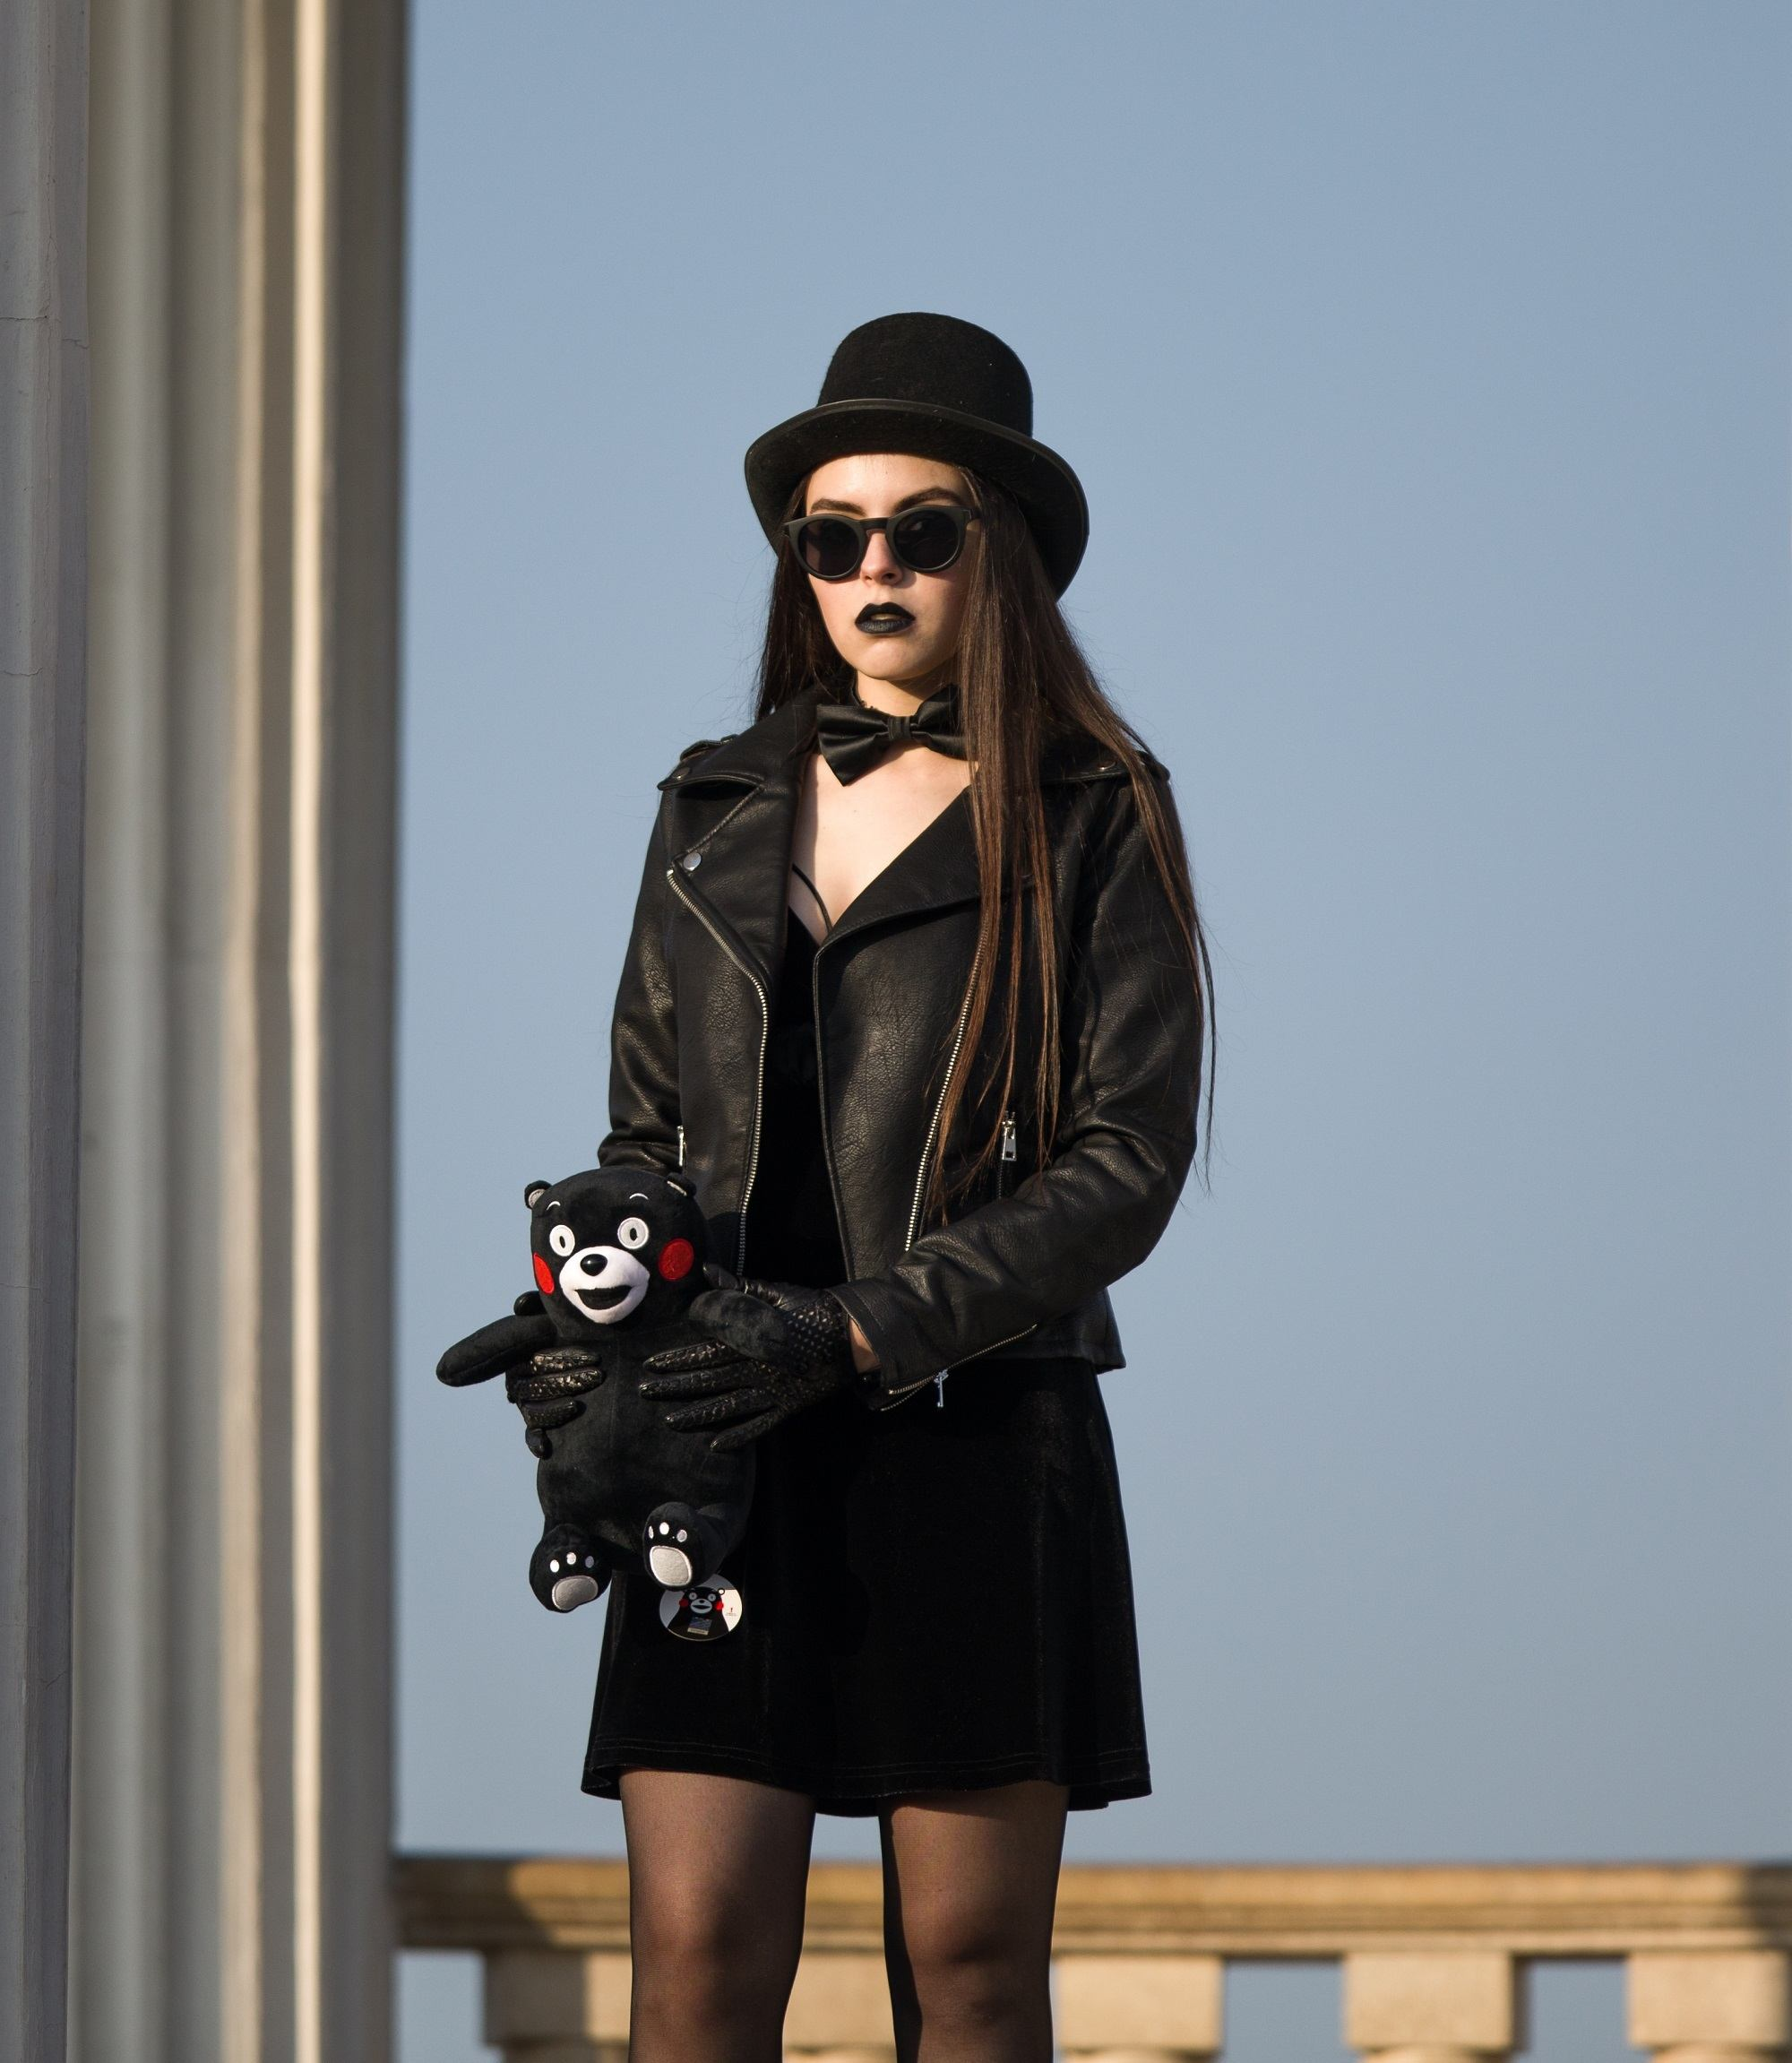 Goth hairstyles: Woman with long, straight dark brown hair wearing a hat, dark sunglasses, leather jacket and black dress and stockings in an outdoor location with blue sky at the background